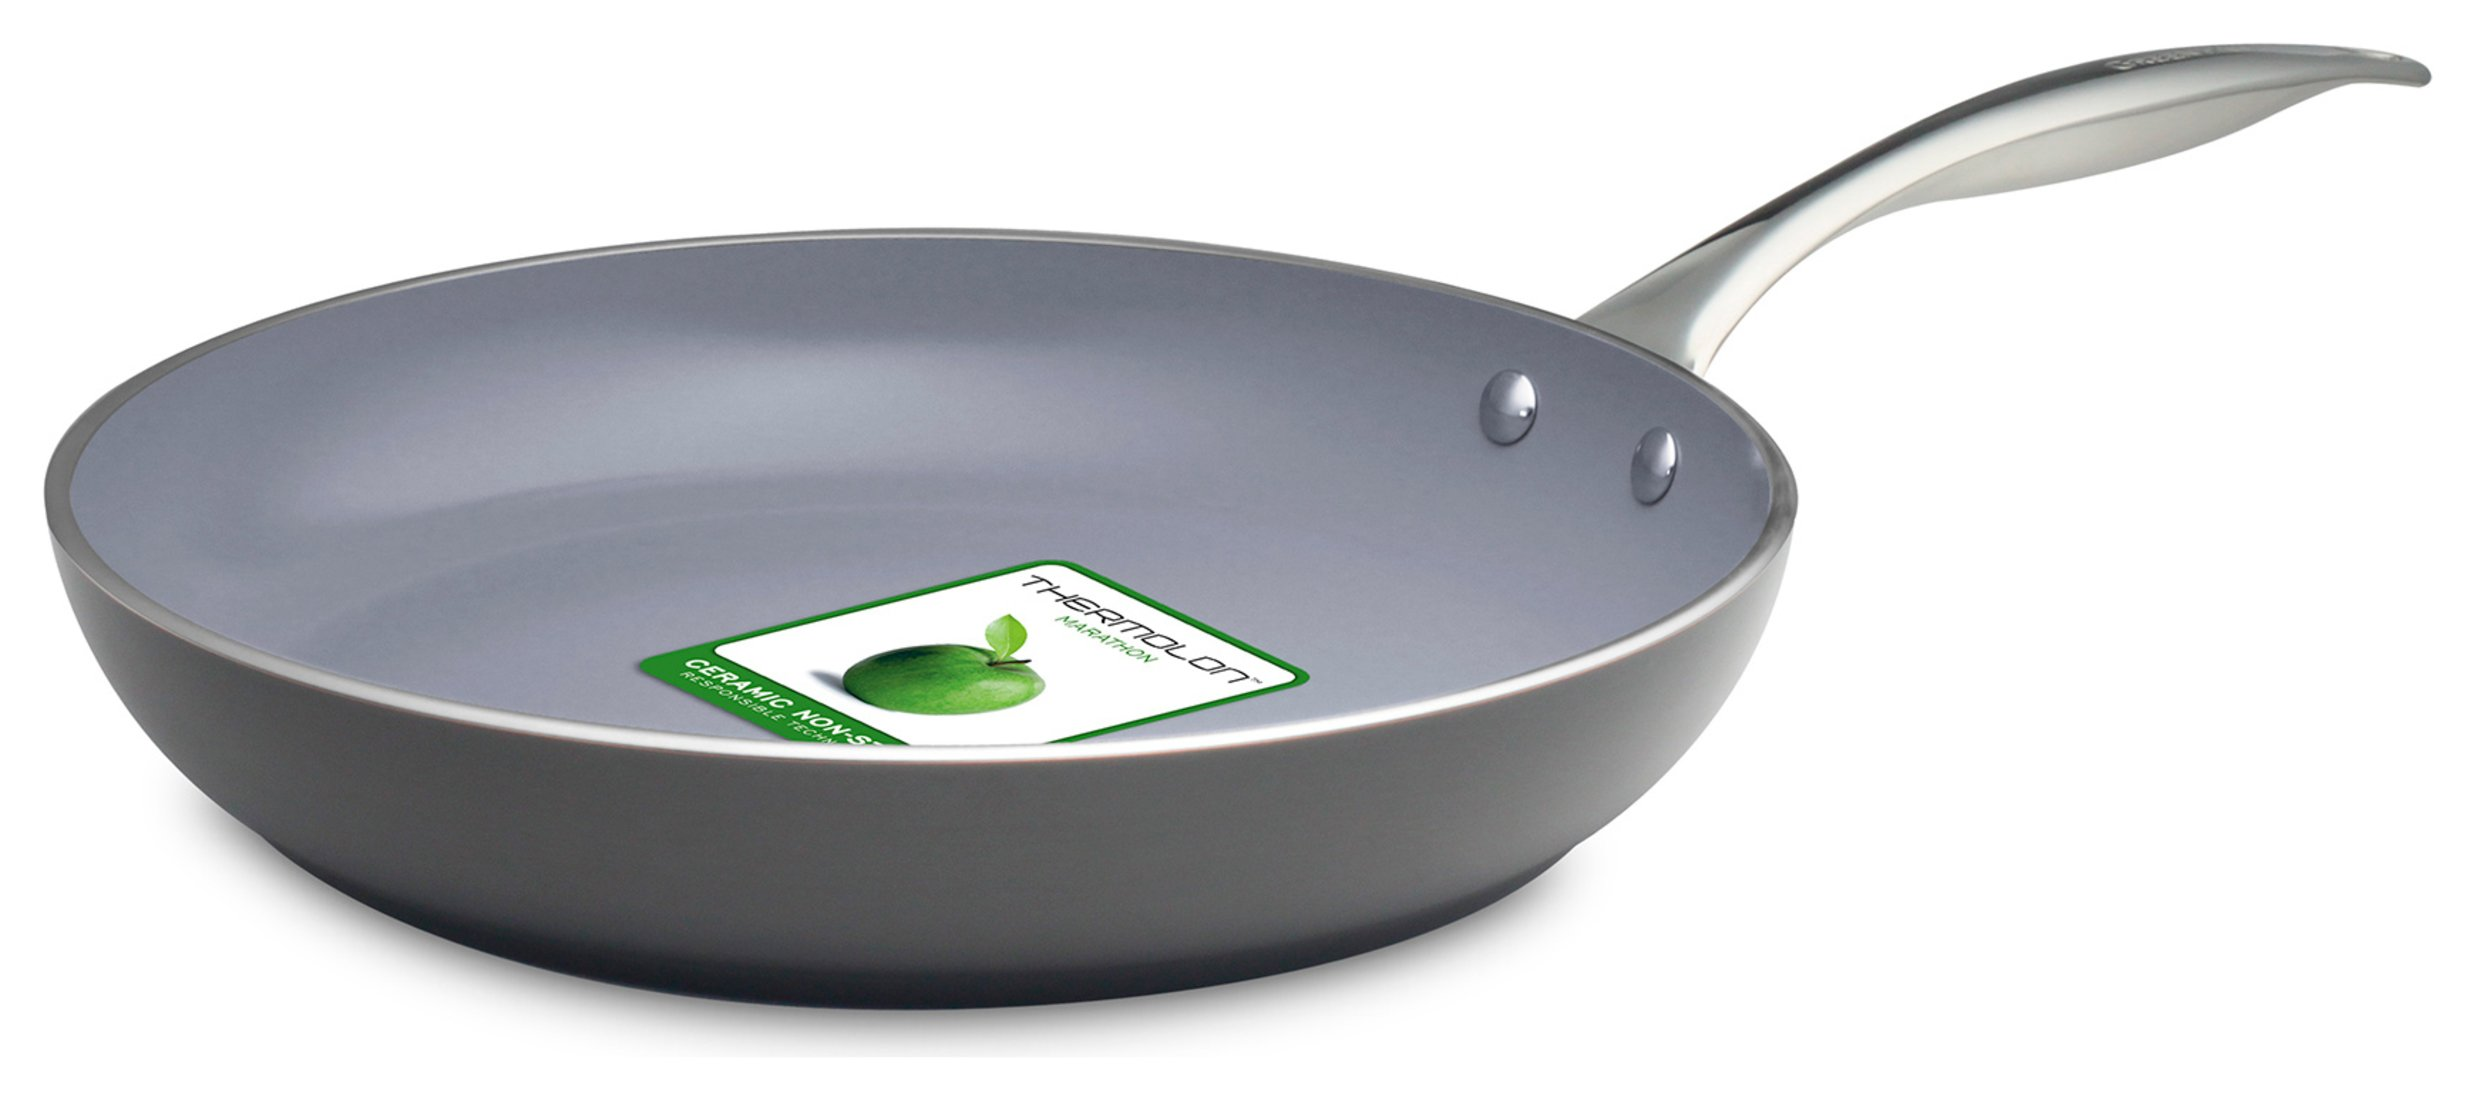 Frying Pans And Woks Page 1 Argos Price Tracker